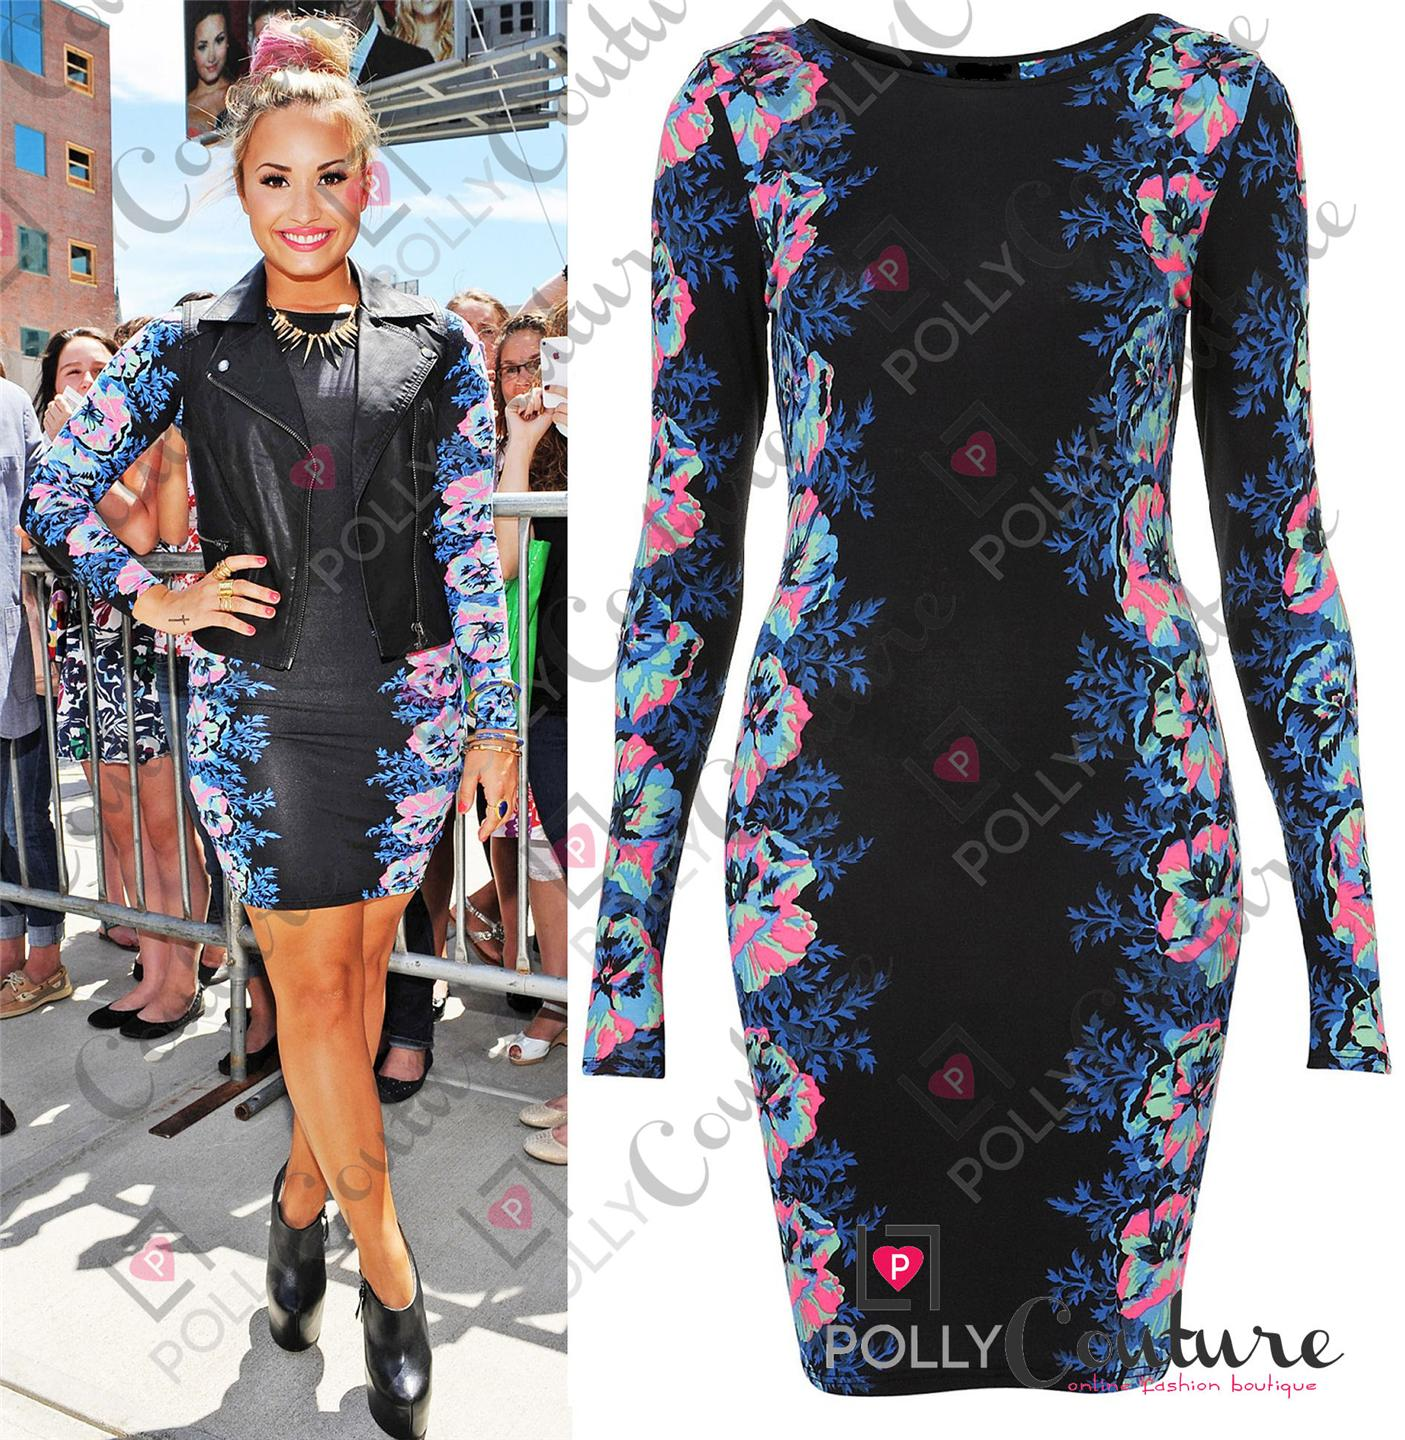 Womens Celeb Floral Print Long Sleeve Ladies Bodycon Party Evening Black Dress | eBay